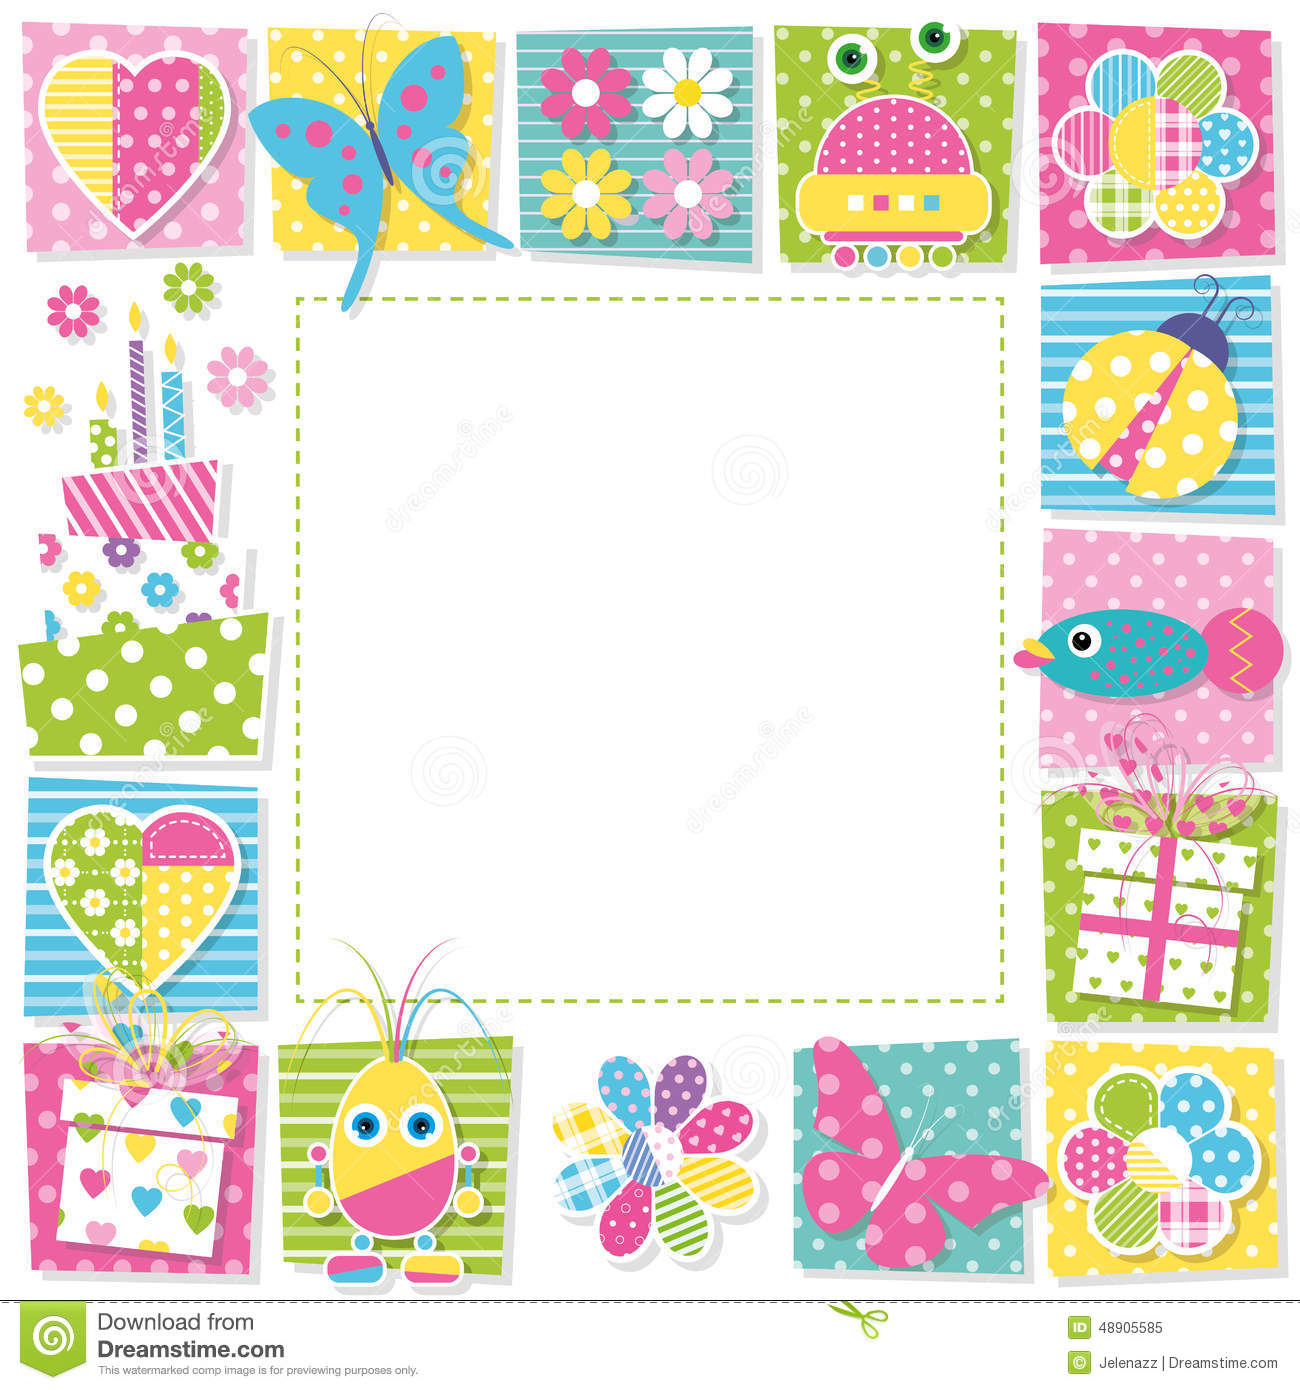 Cute happy birthday border stock vector  Illustration of animal